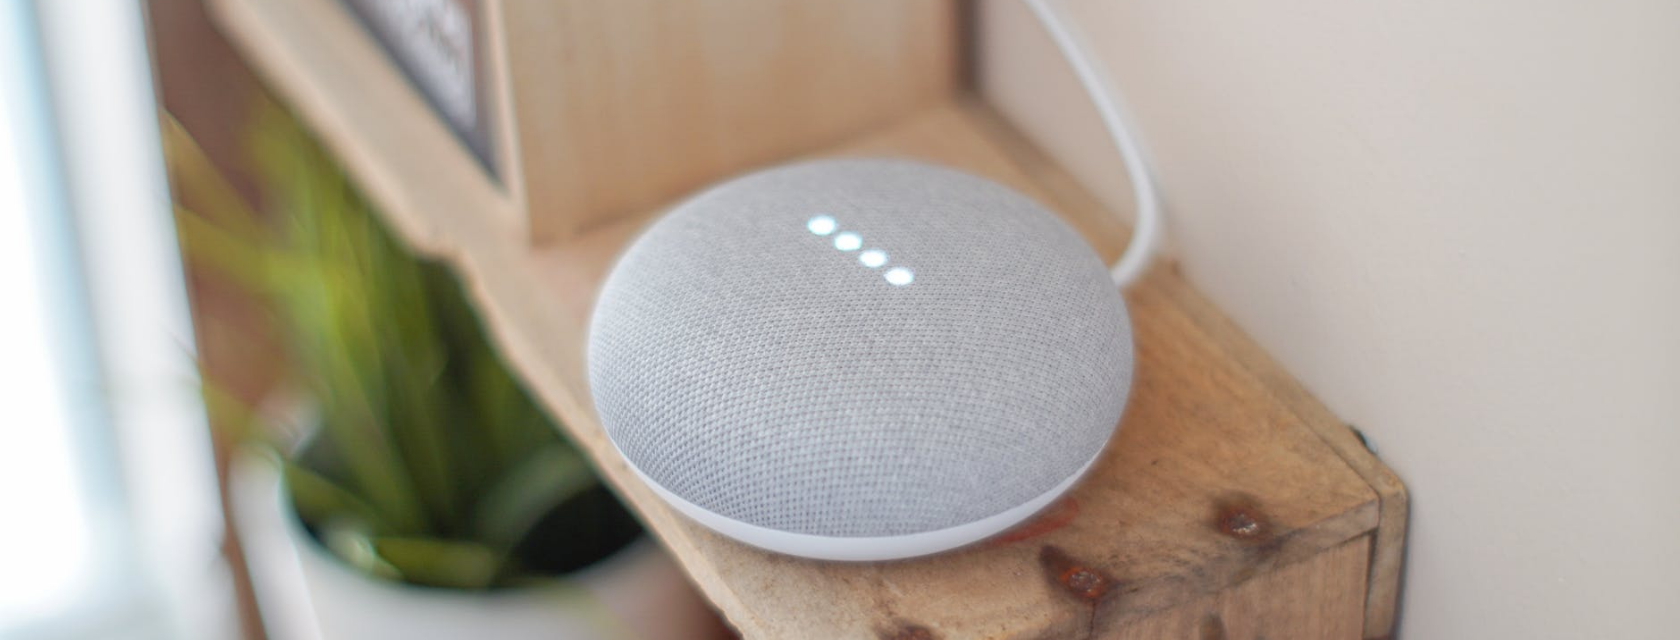 Top 4 Voice Commerce trends for 2020